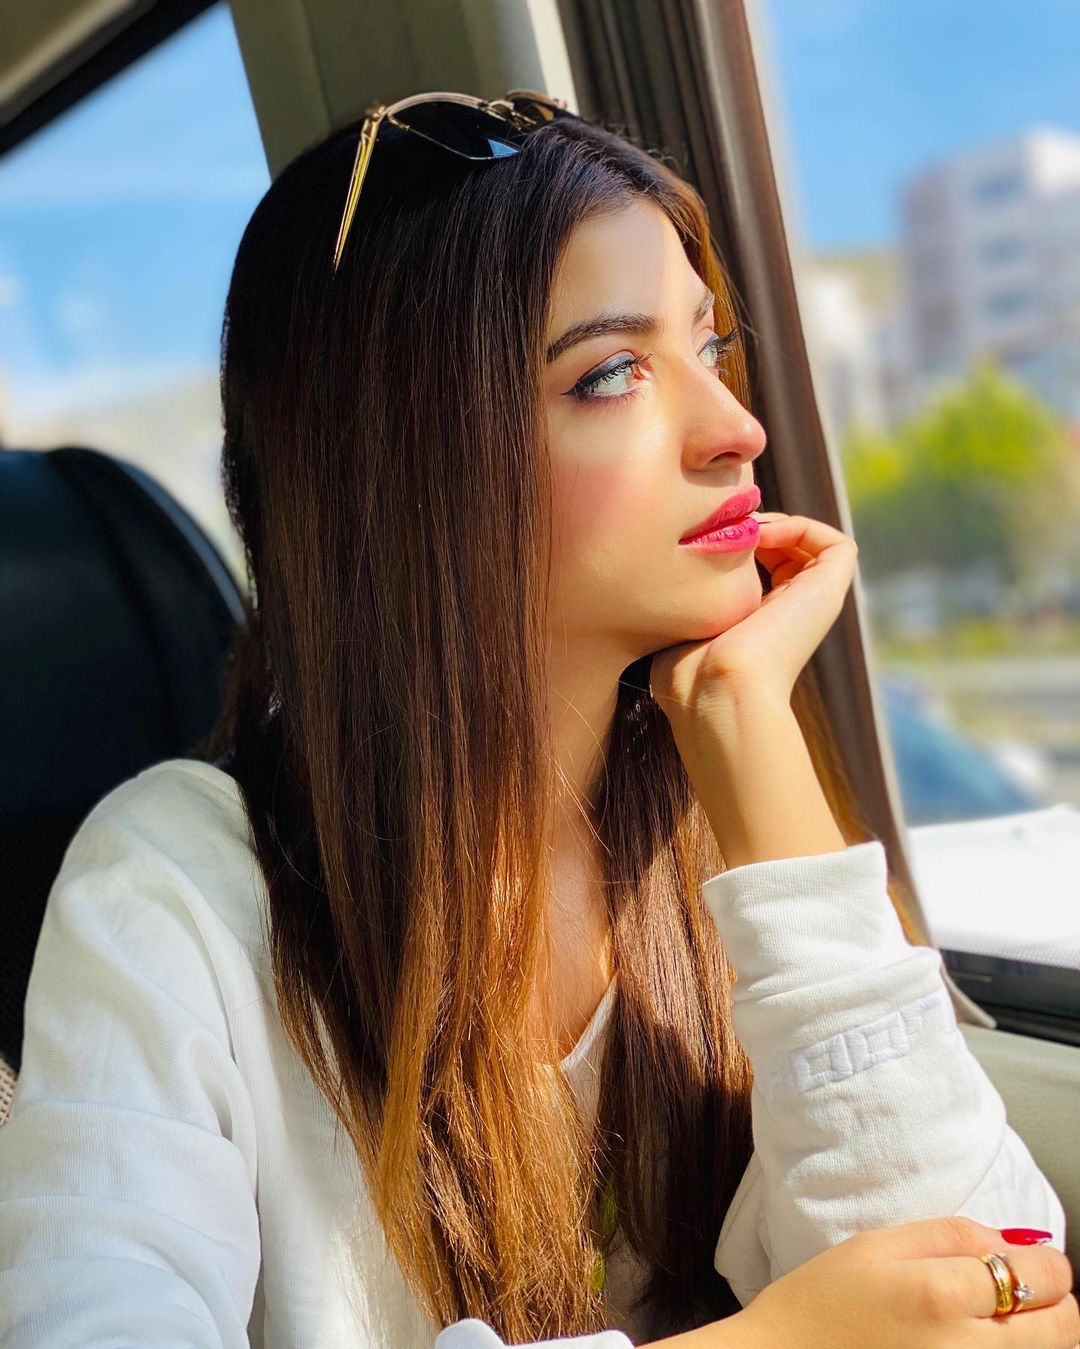 Kinza Hashmi is looking Gorgeous in Her Turkey Trip Pictures